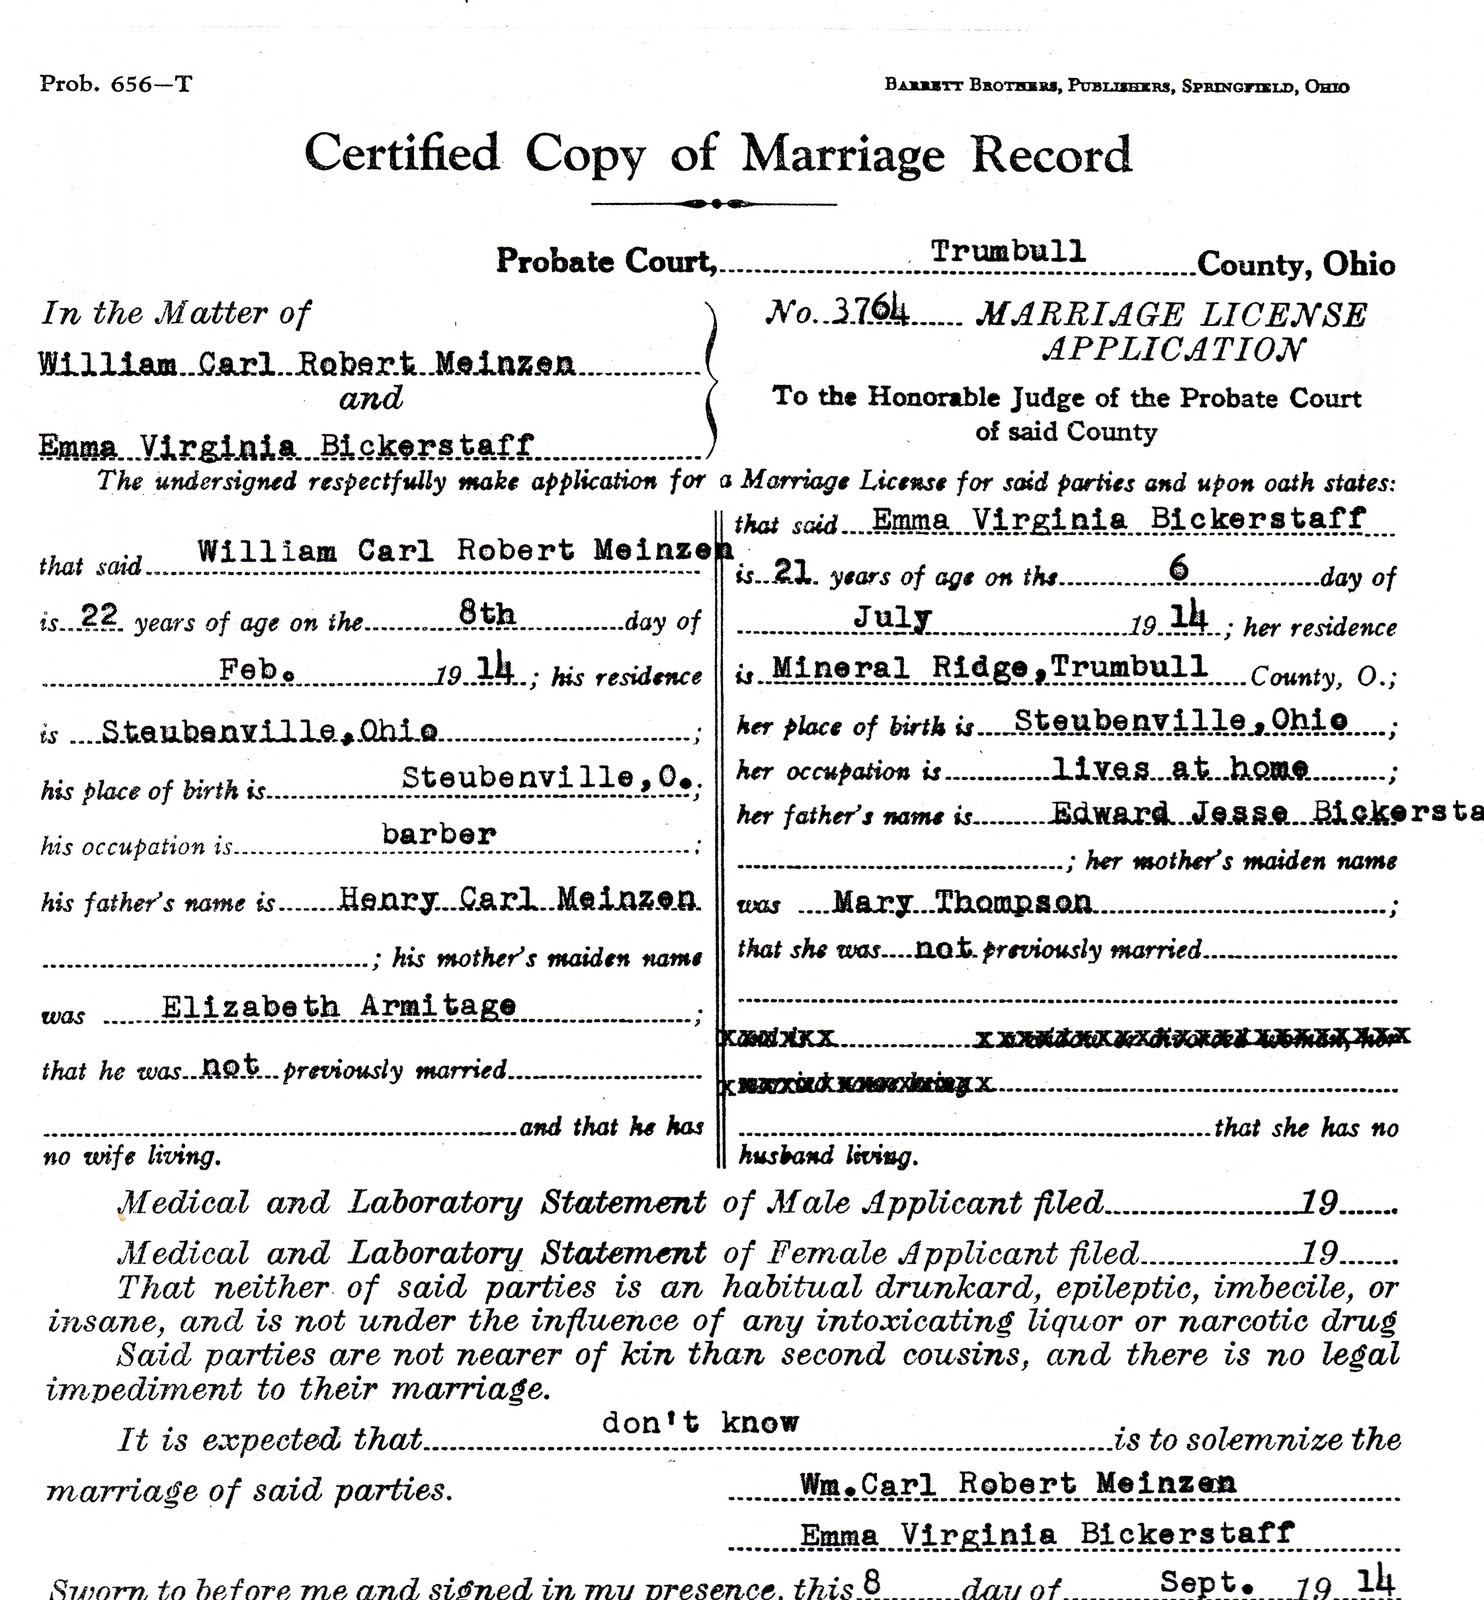 My Ancestors And Me: Reviewing Marriage Records